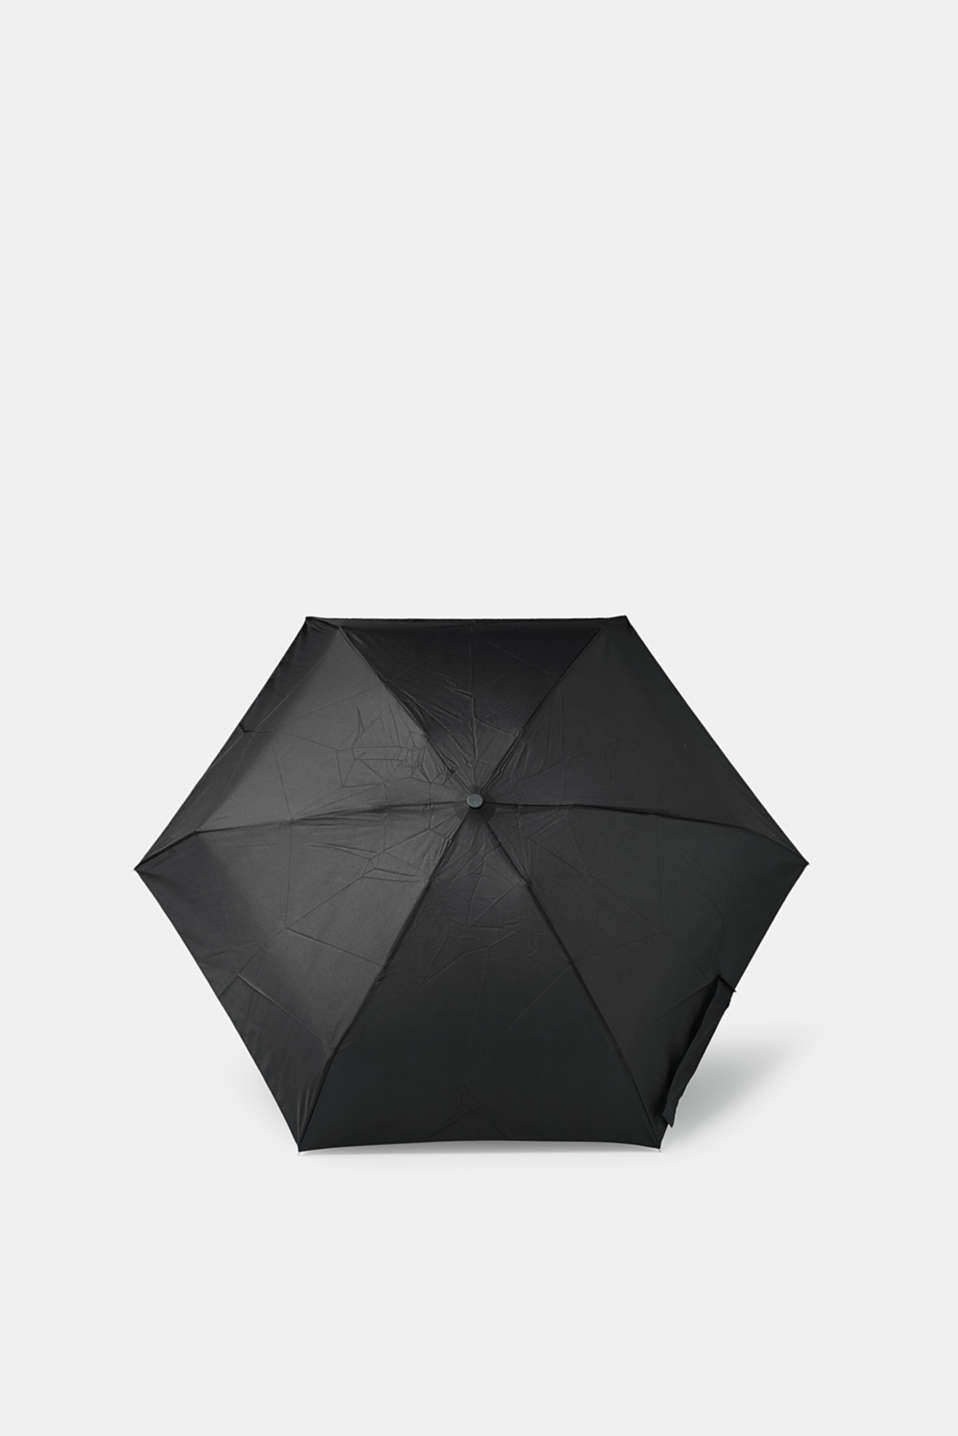 Esprit - Ultra-mini umbrella in a pocket-size format